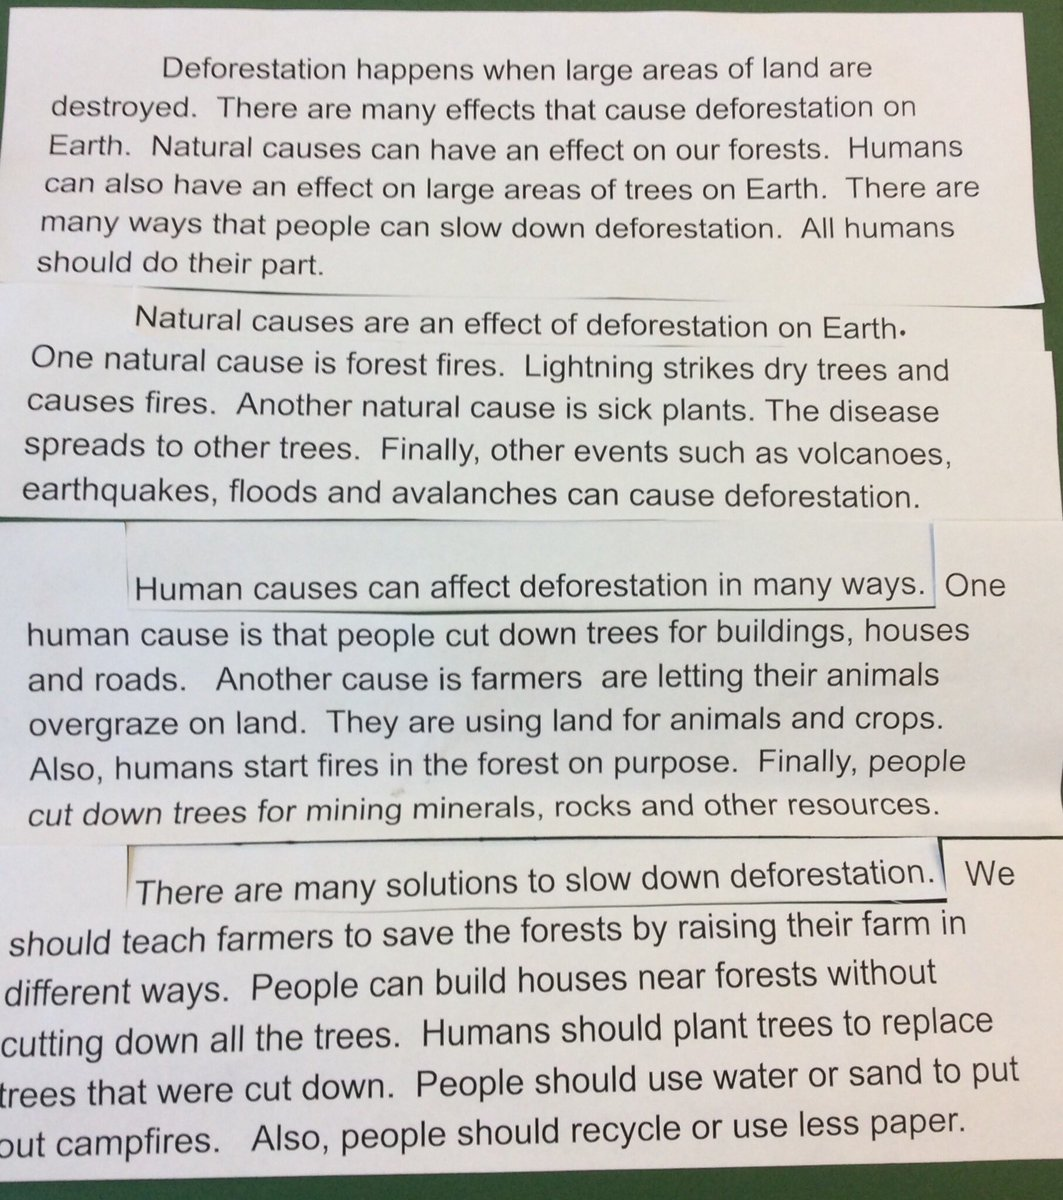 017 Dtwmvqevaaatseq Deforestation Essay Phenomenal Topics In Hindi Pdf Full